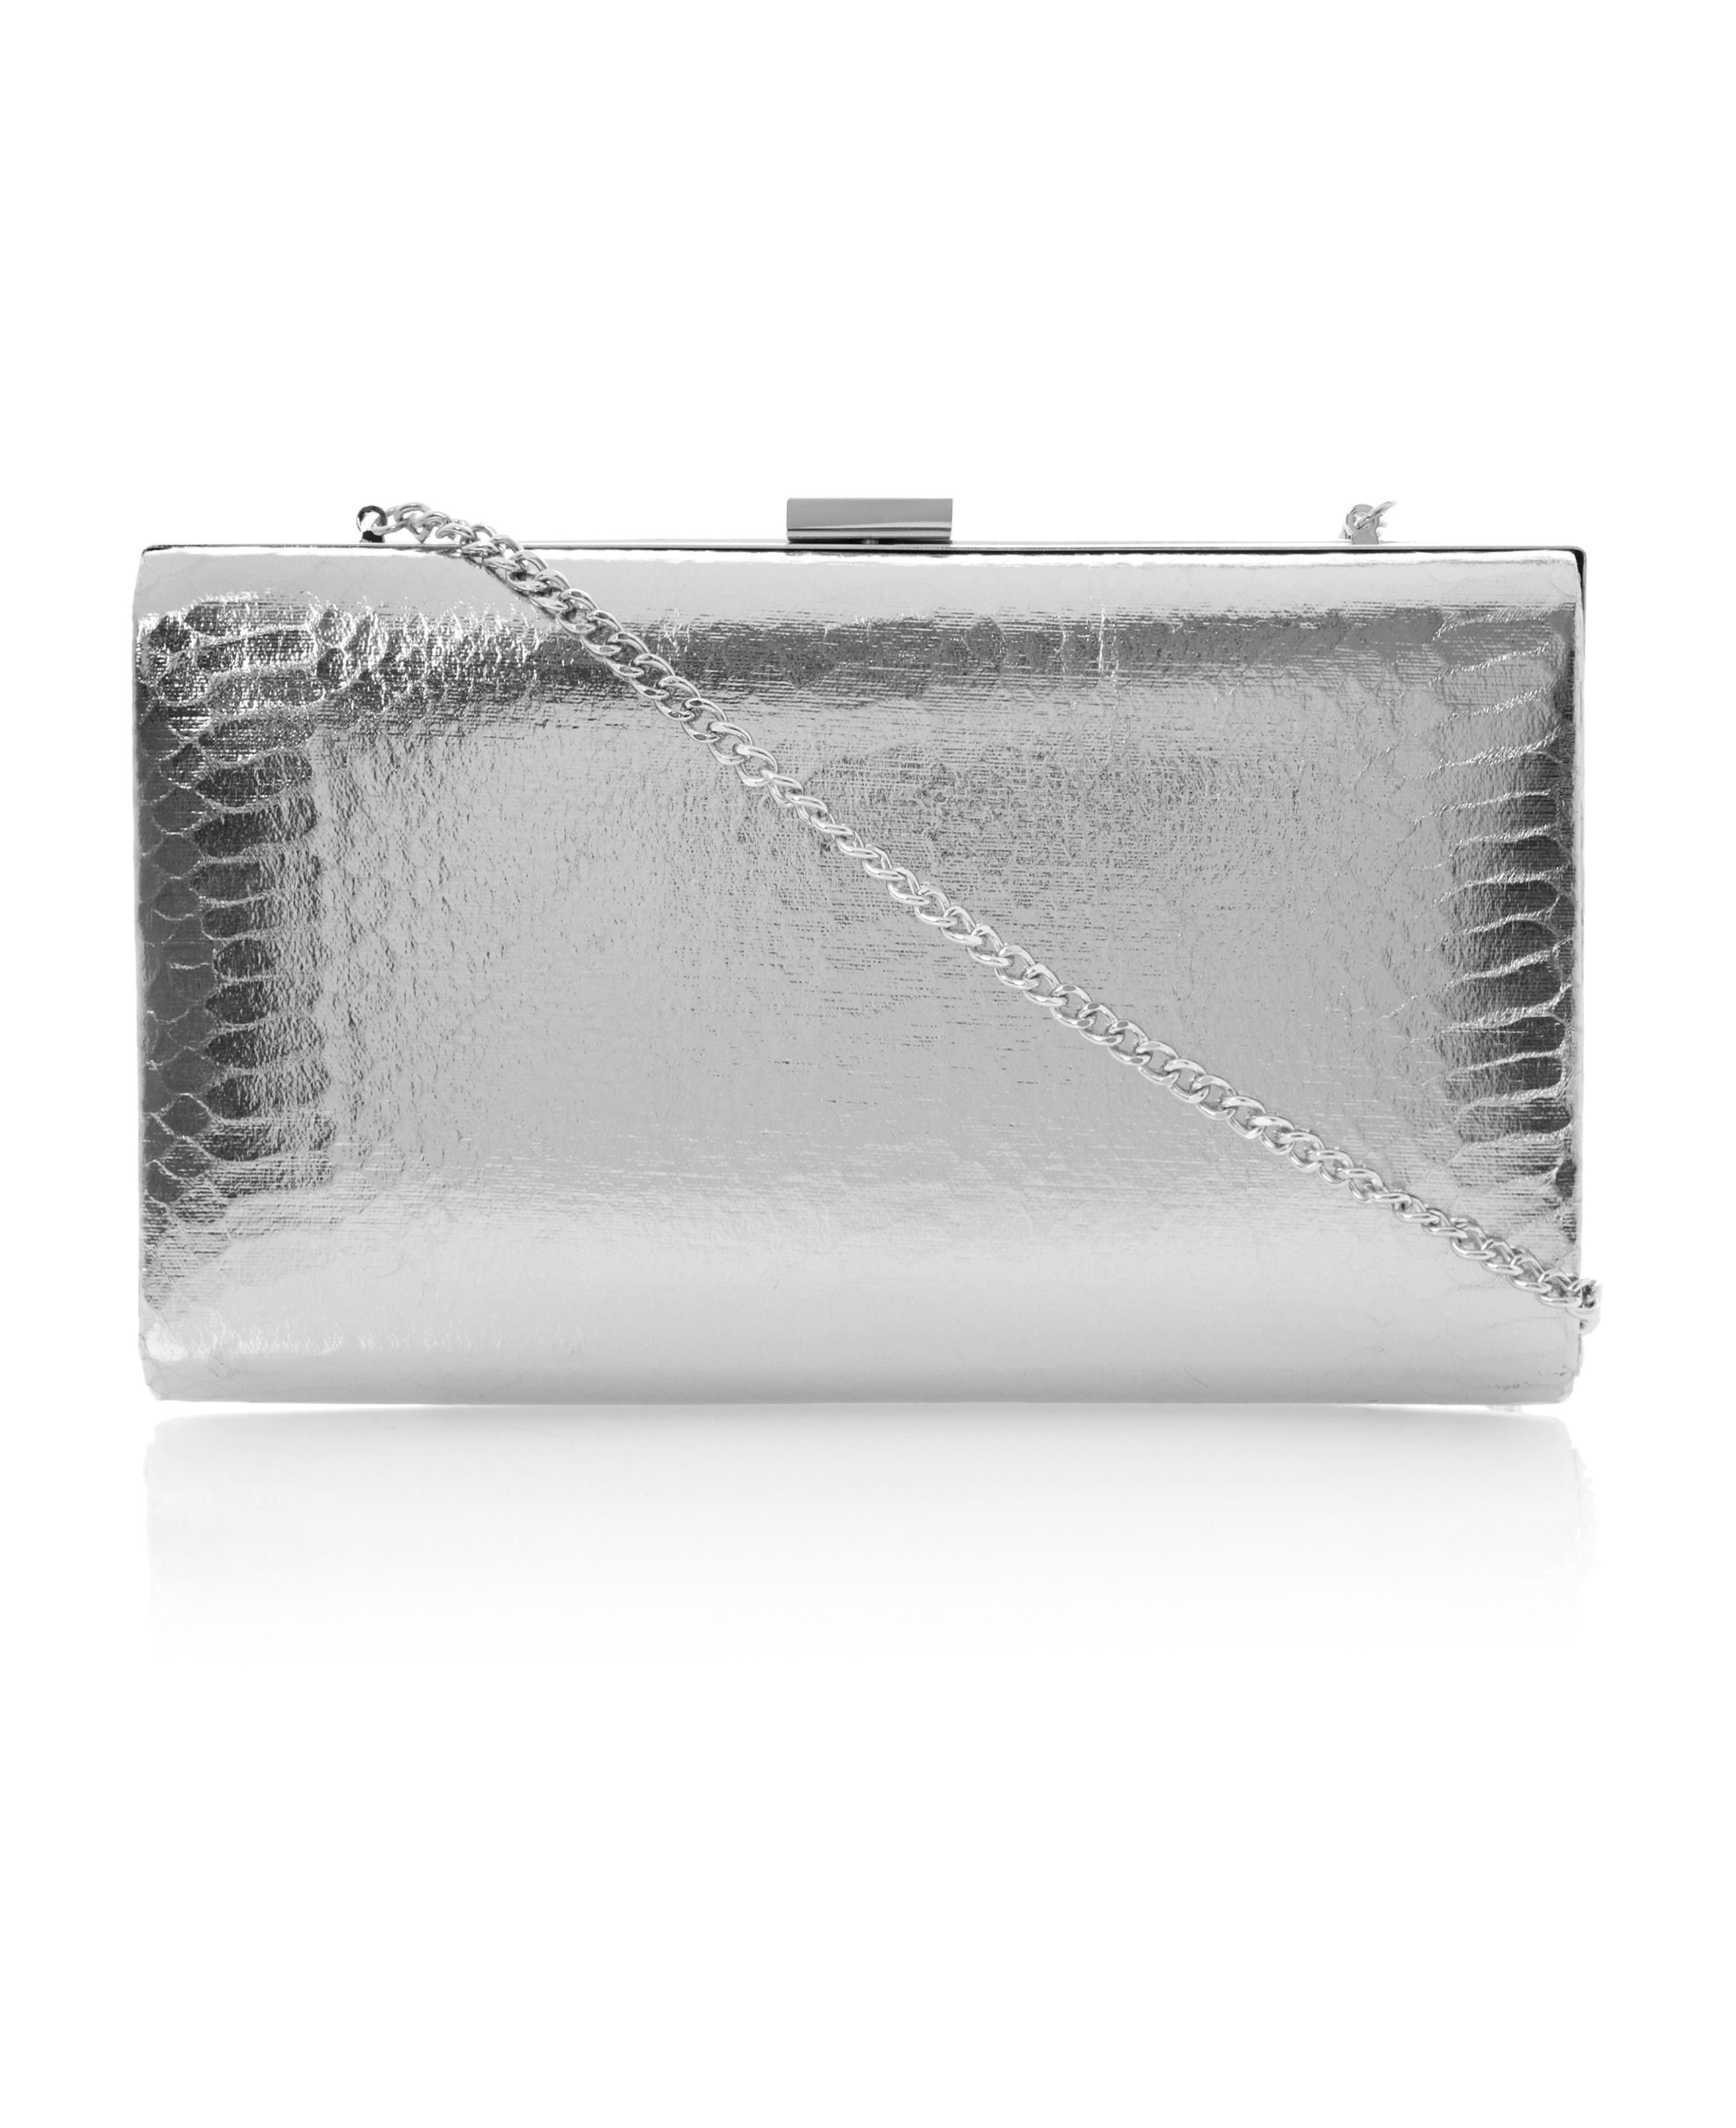 Beloise metallic snake print clutch bag